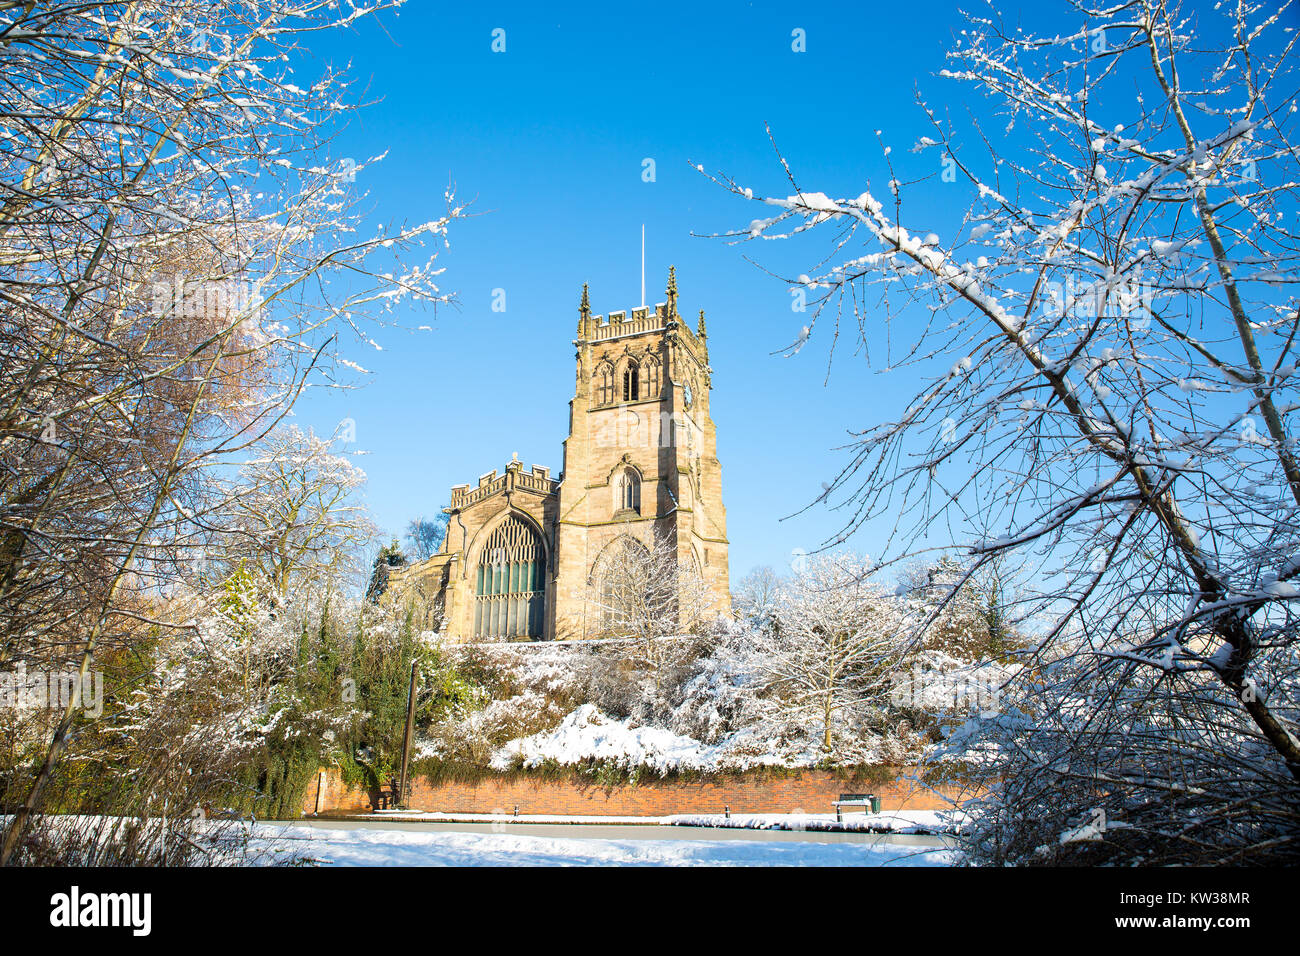 Landscape, exterior shot of St. Mary's Church, Kidderminster, on a beautiful & bright sunny winter morning - Stock Image